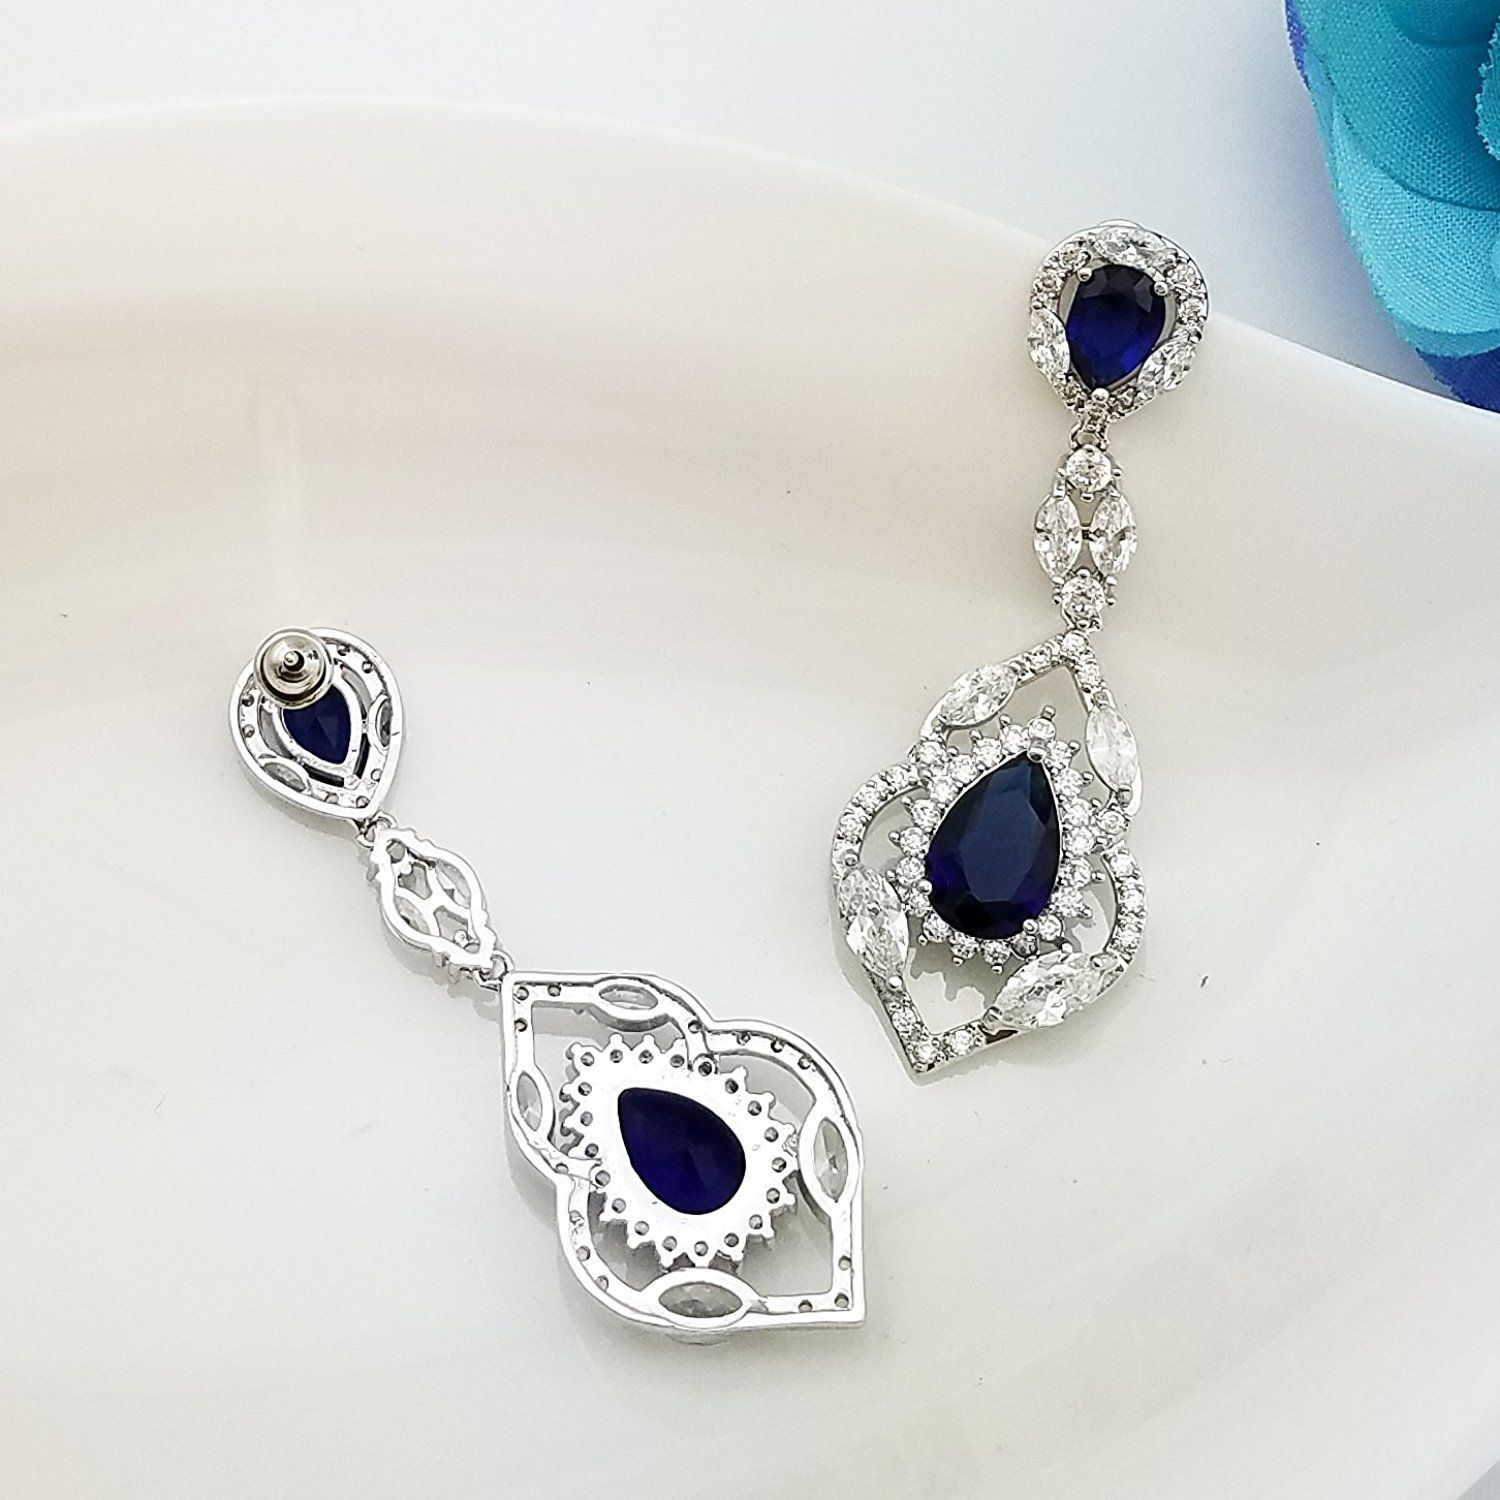 Selovo Wedding Teardrop Dangle Earrings Silver Tone Vintage Chandelier Zircon Check Out This Great Article